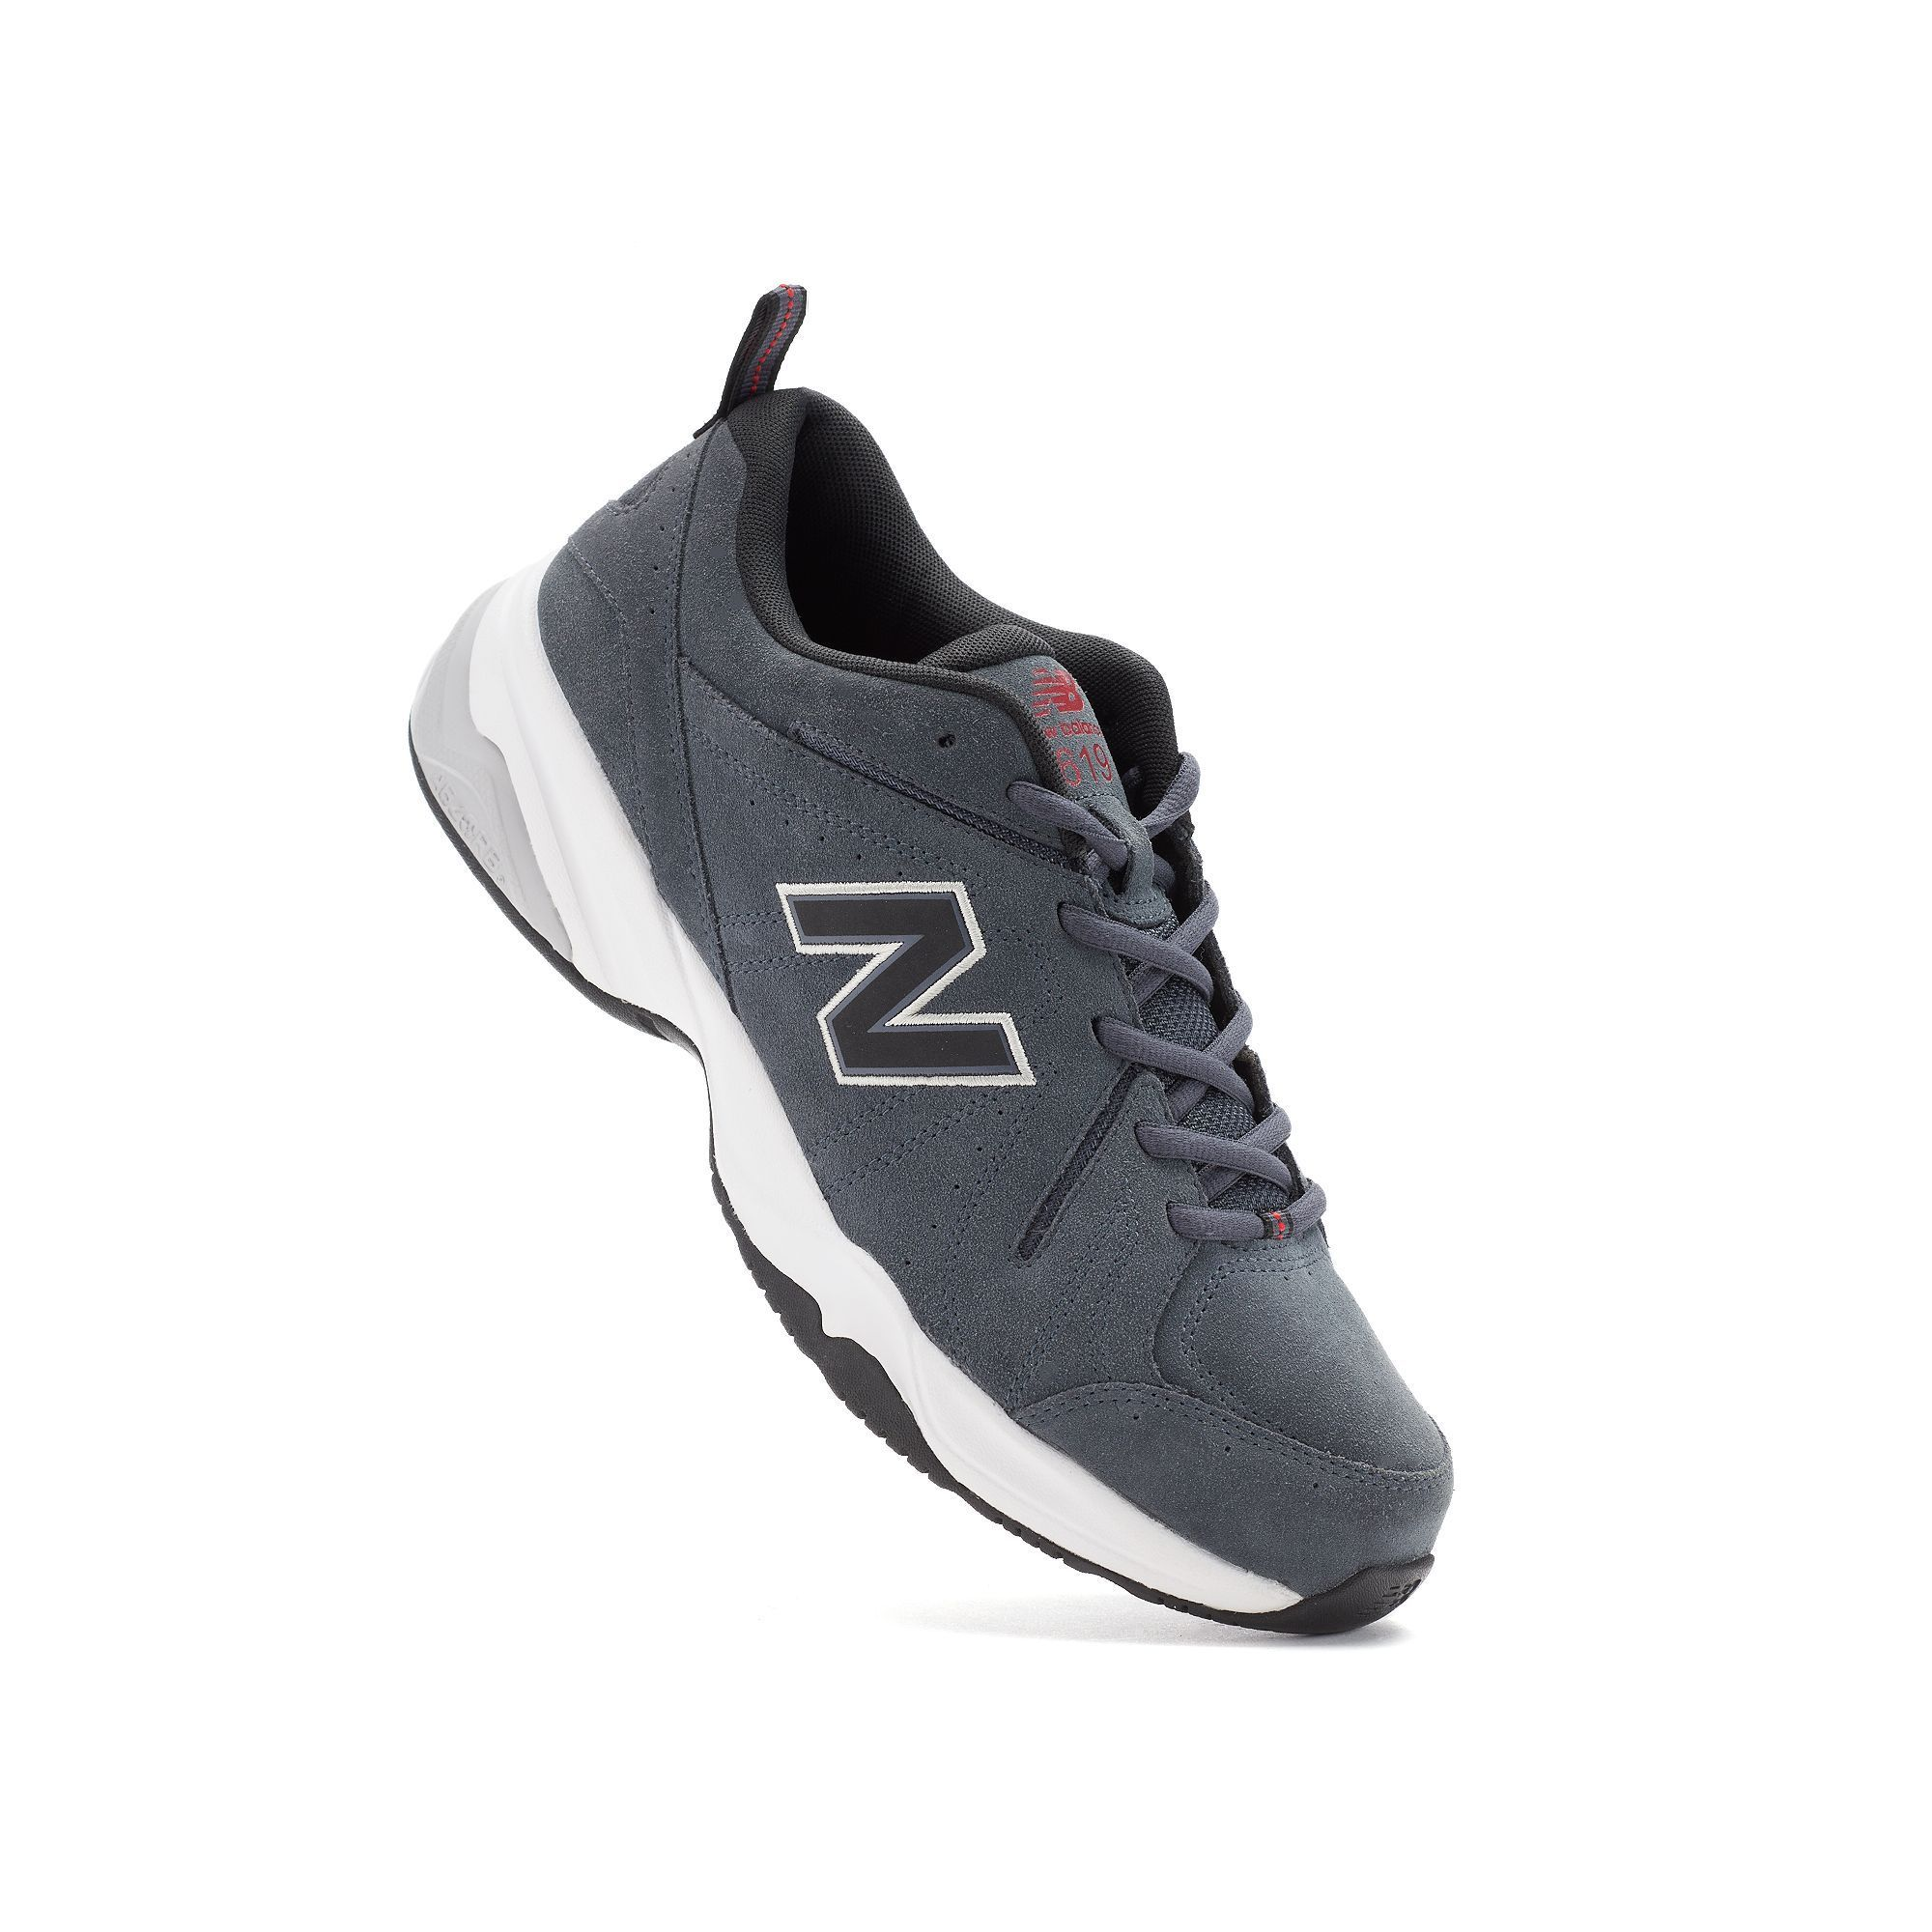 Buy Popular  New Balance 619 Men's Suede Cross-Training Shoes